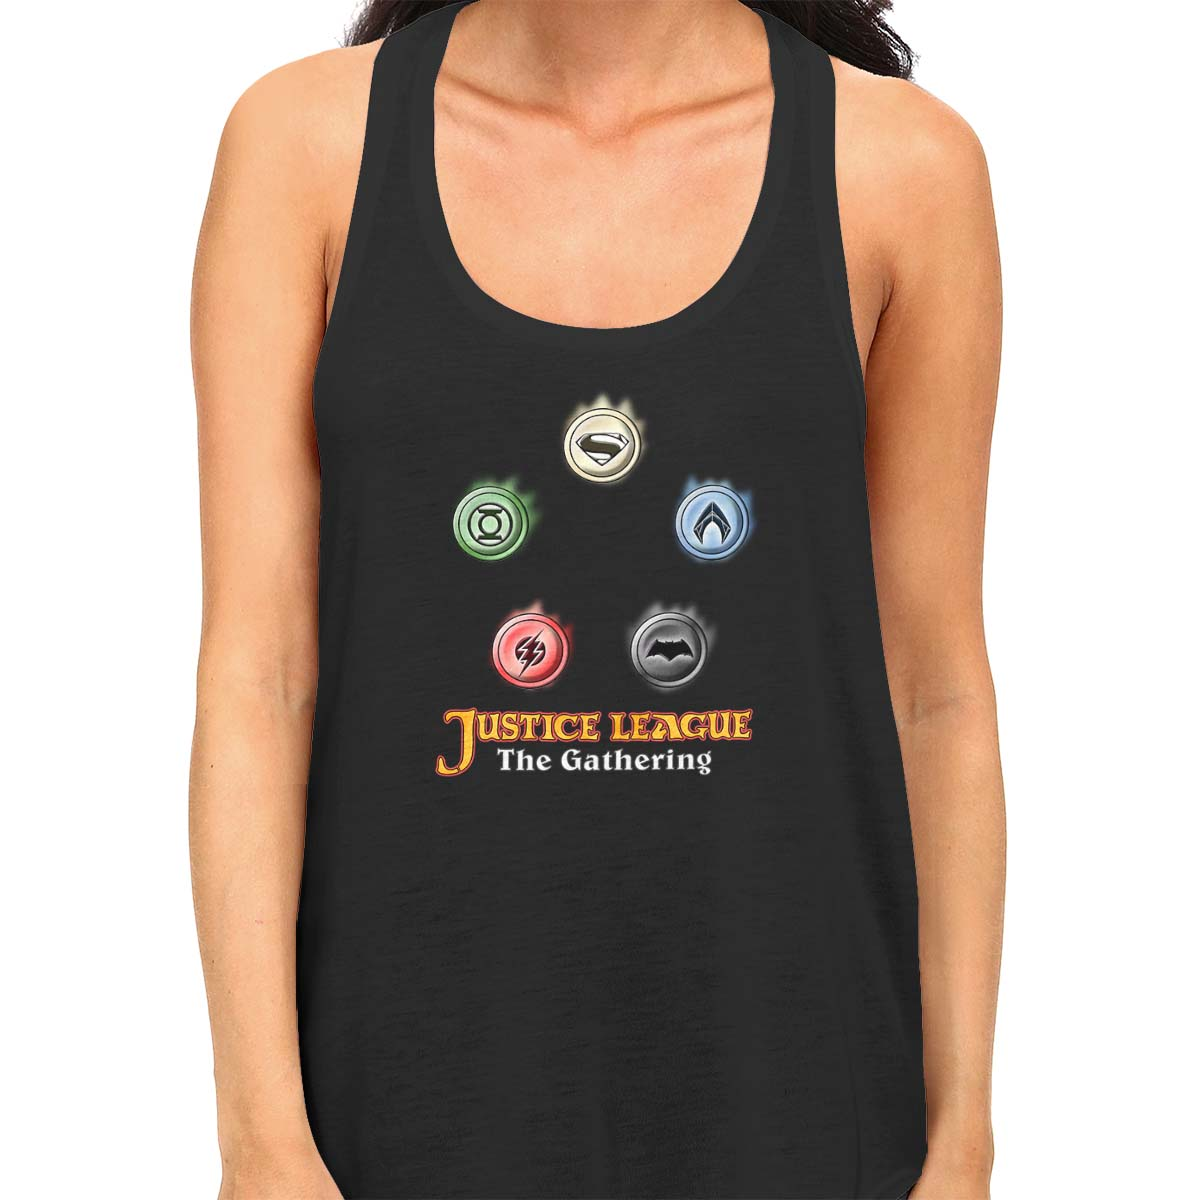 Justice League The Gathering Women's Racerback Tank